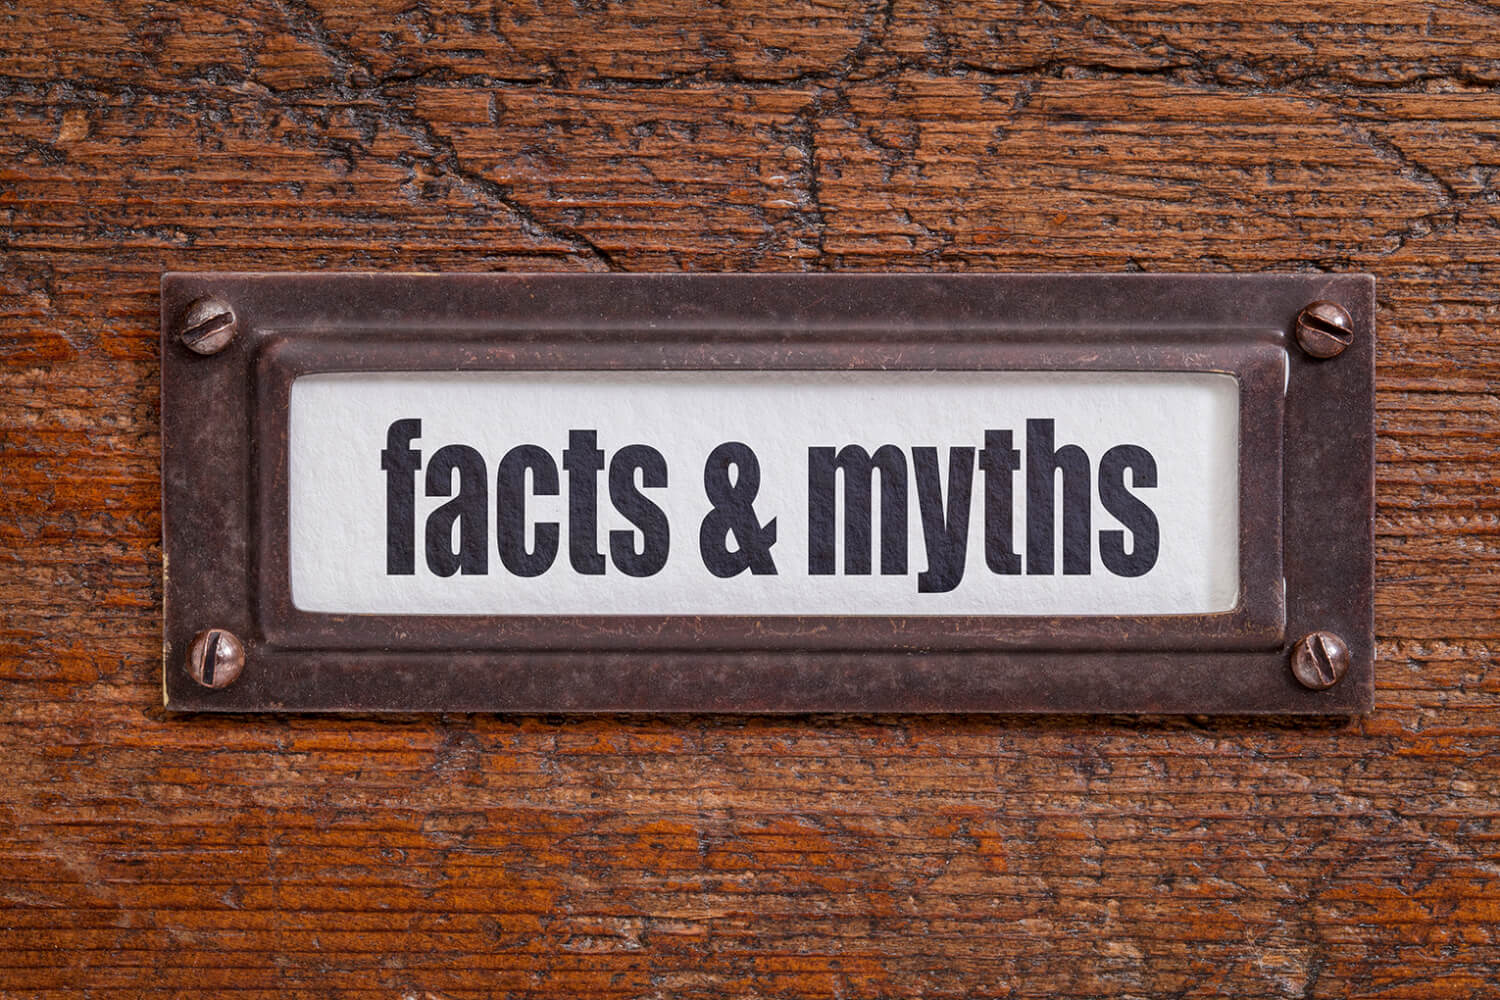 5 Myths About Working for Staffing Companies